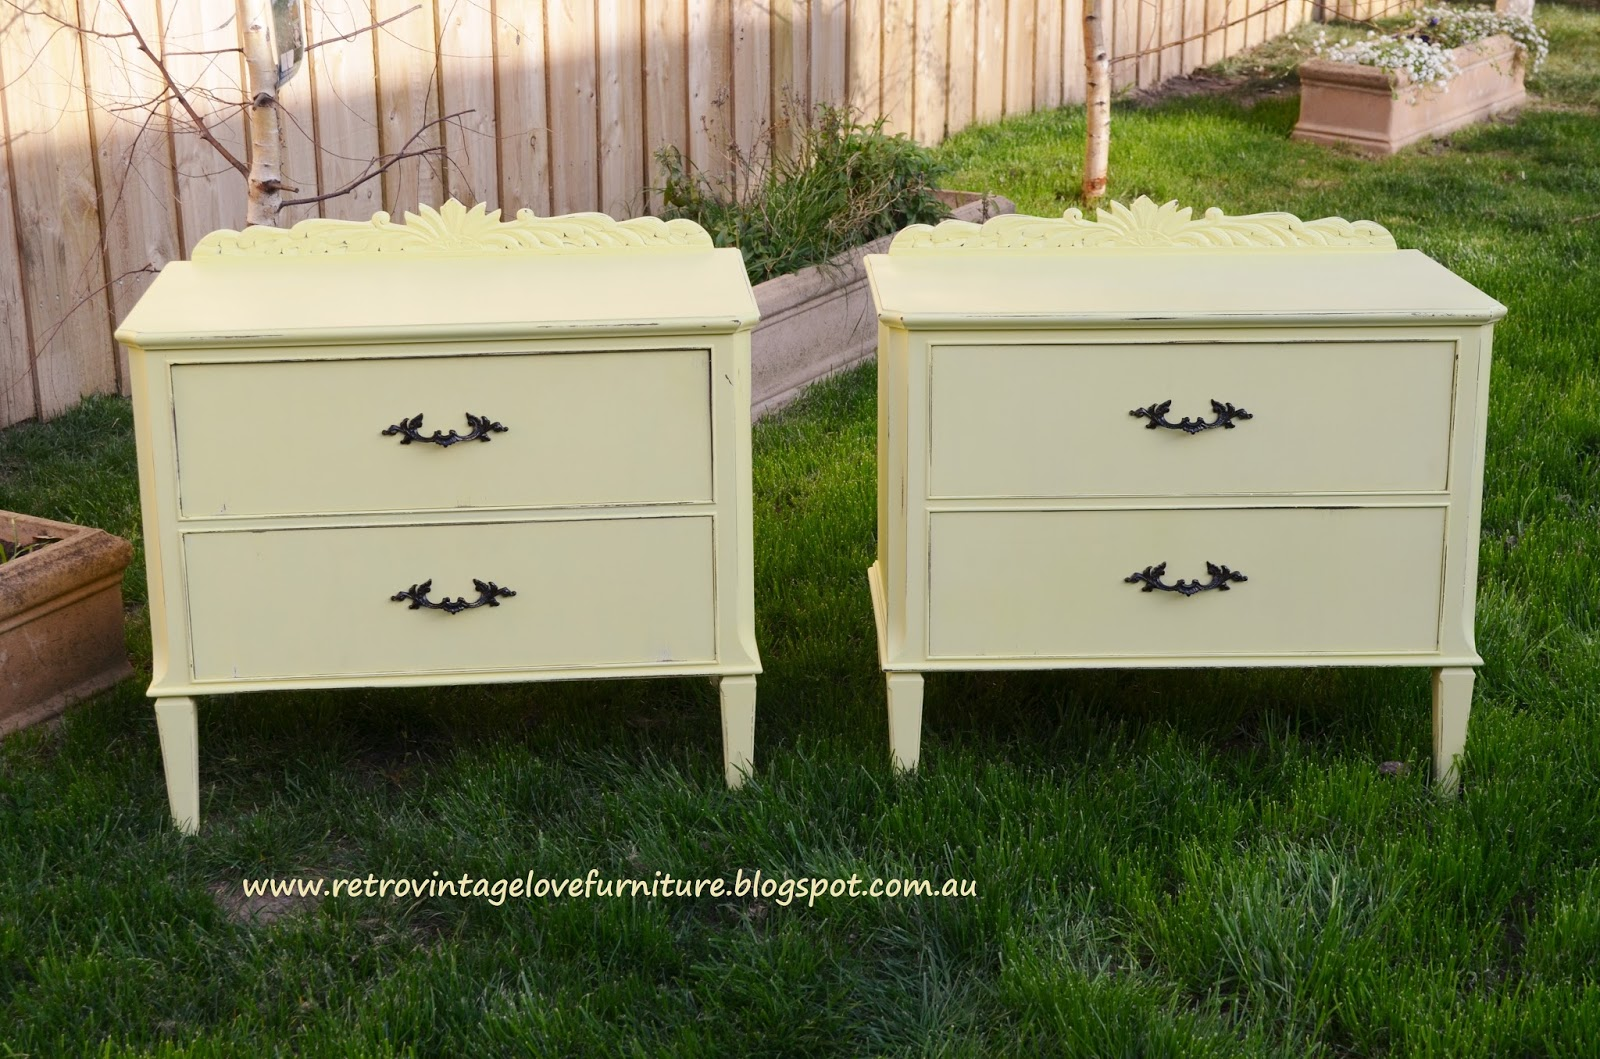 Vintage bedside table ideas - Vintage Yellow Distressed Painted Bedside Tables